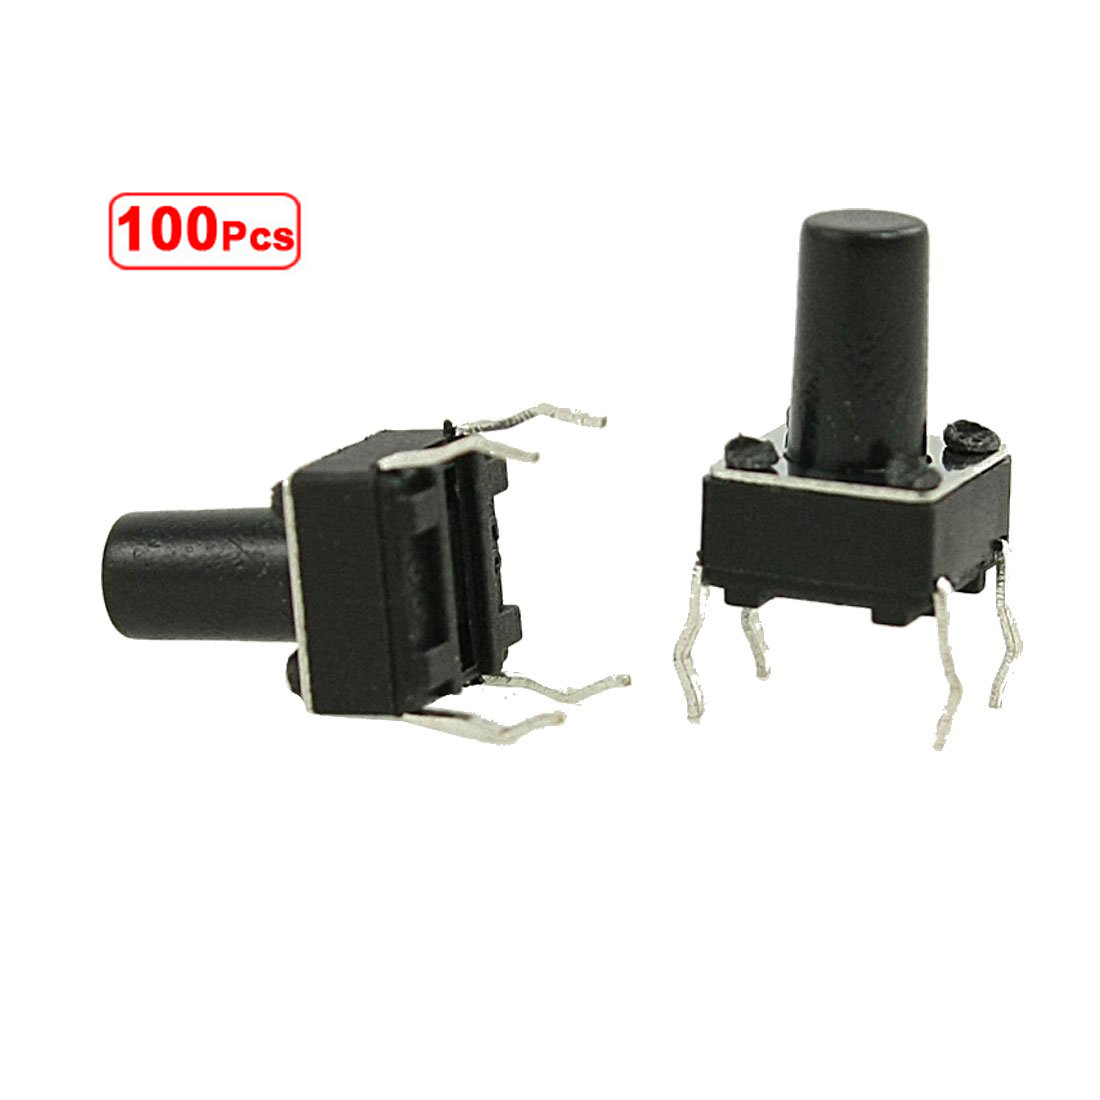 PROMOTION! 100 Pcs 6 x 6mm x 9.5mm PCB Momentary Tactile Tact Push Button Switch 4 Pin DIP